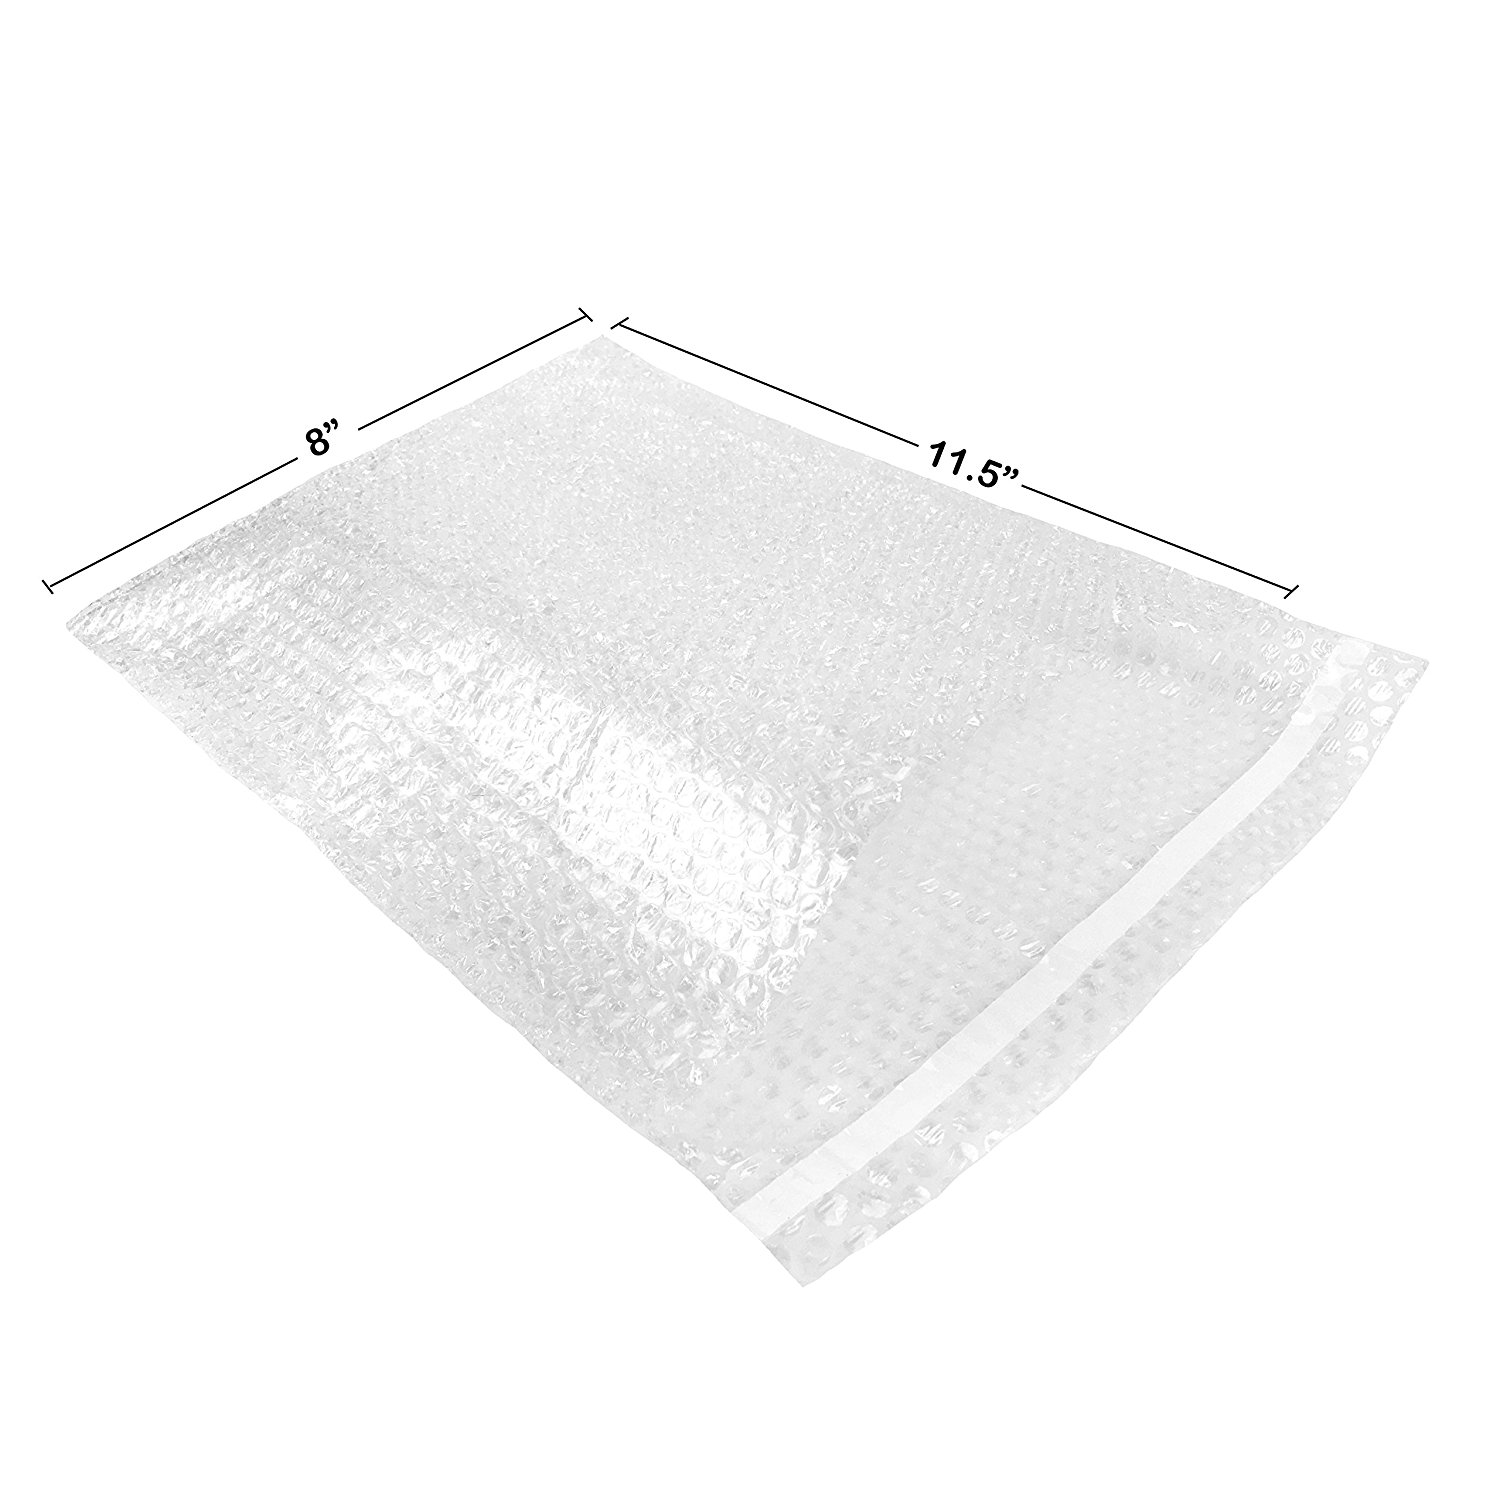 Uboxes   50 bong bóng túi – 50.80 cm x self-sealing Packing Moving túi Pouches